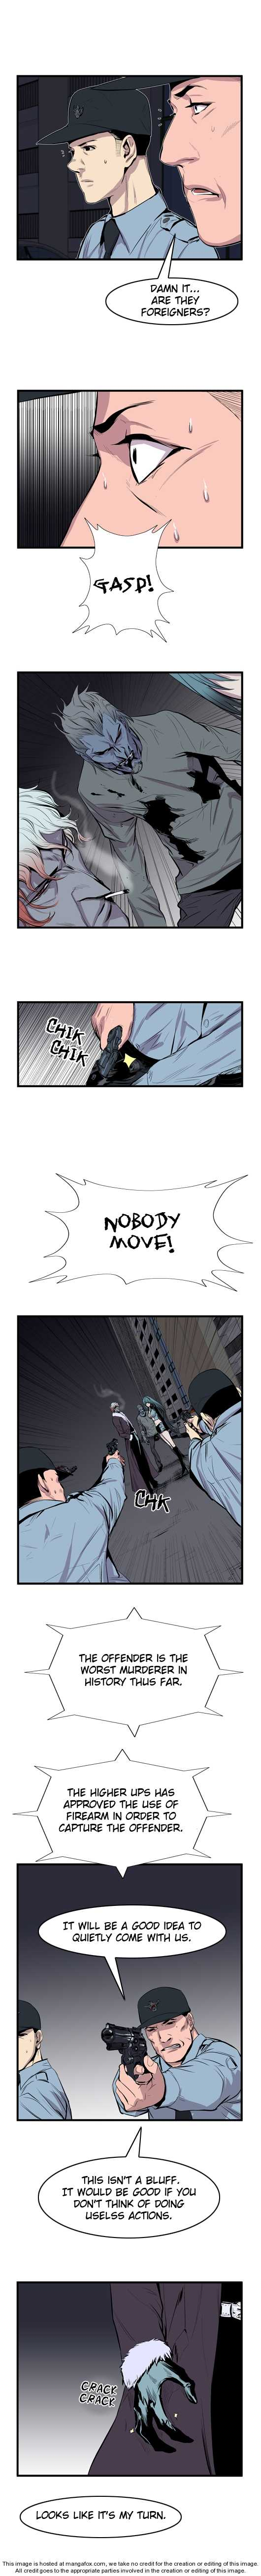 Noblesse 43 Page 2